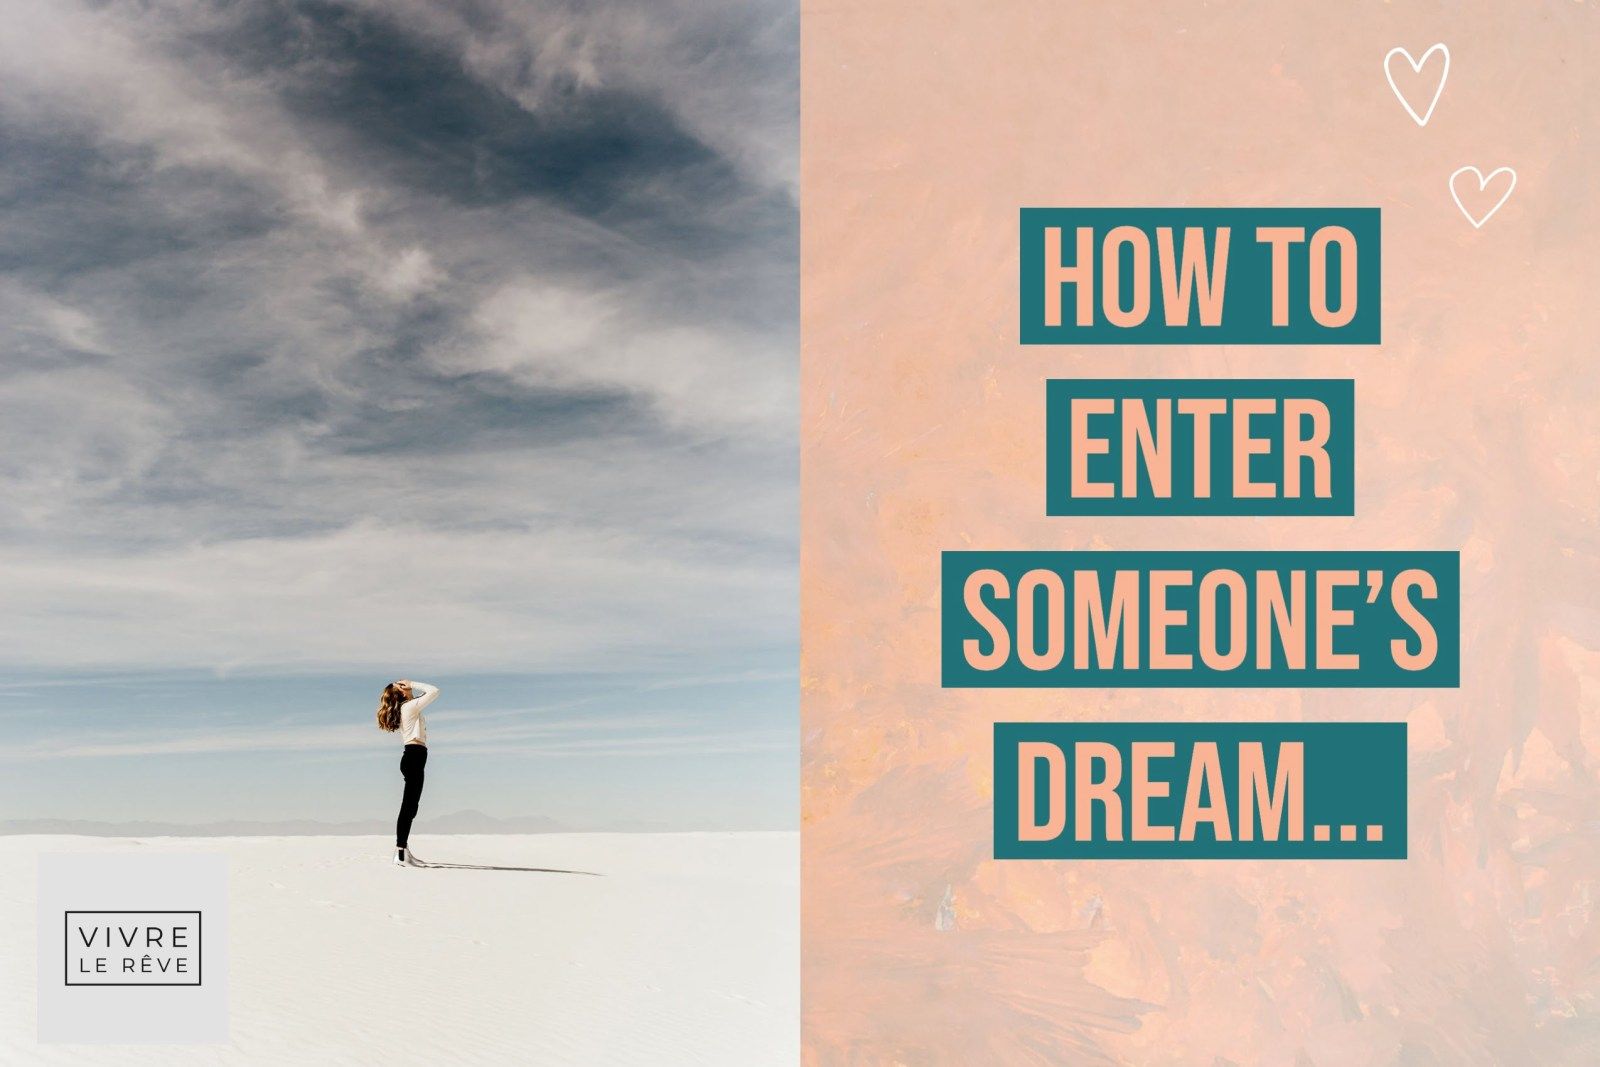 How to Enter Someone's Dream...